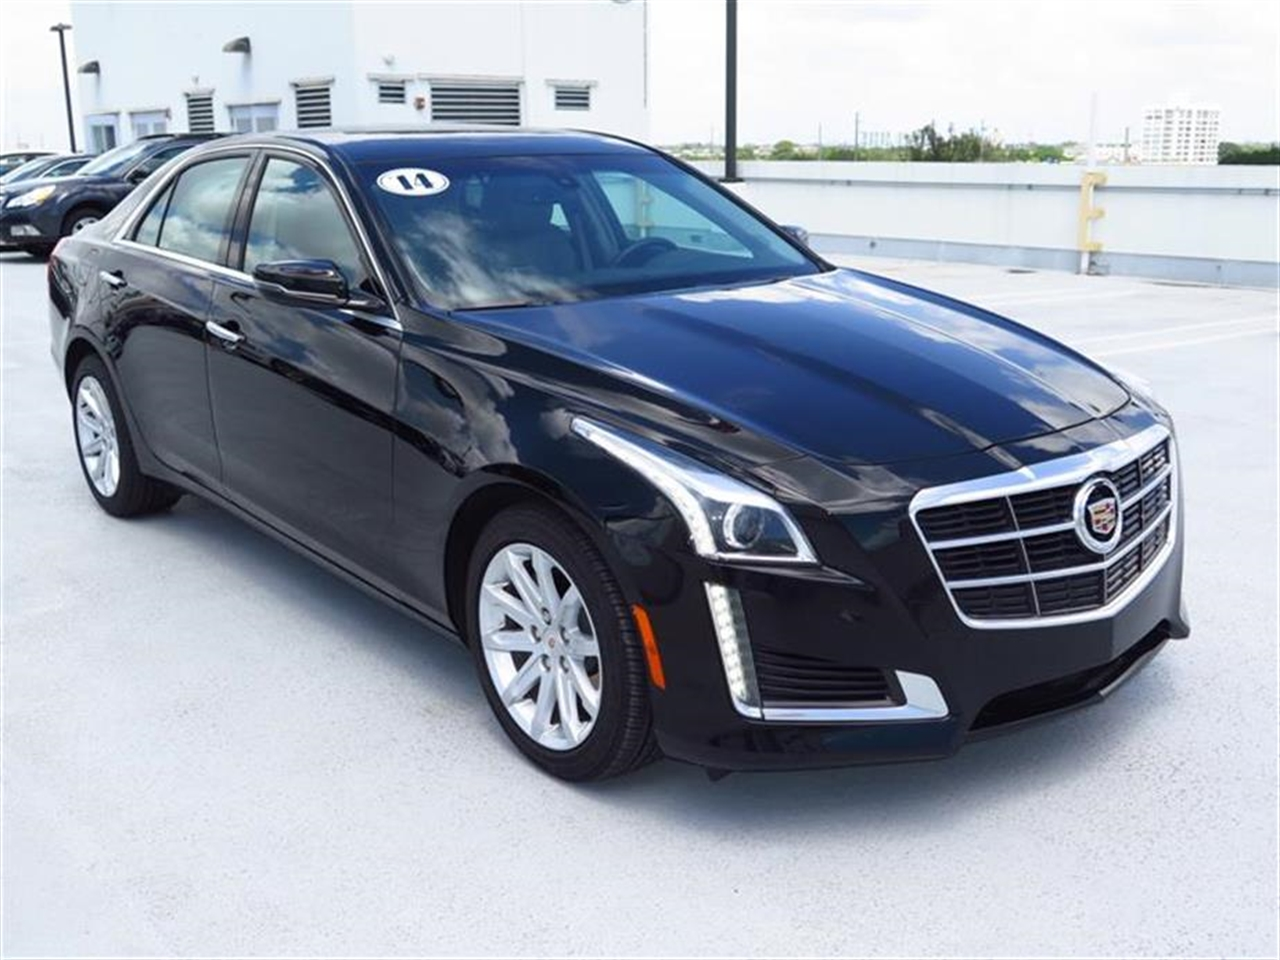 2014 CADILLAC CTS 4dr Sdn 20L Turbo RWD 6289 miles Adaptive Remote Start Air filtration system